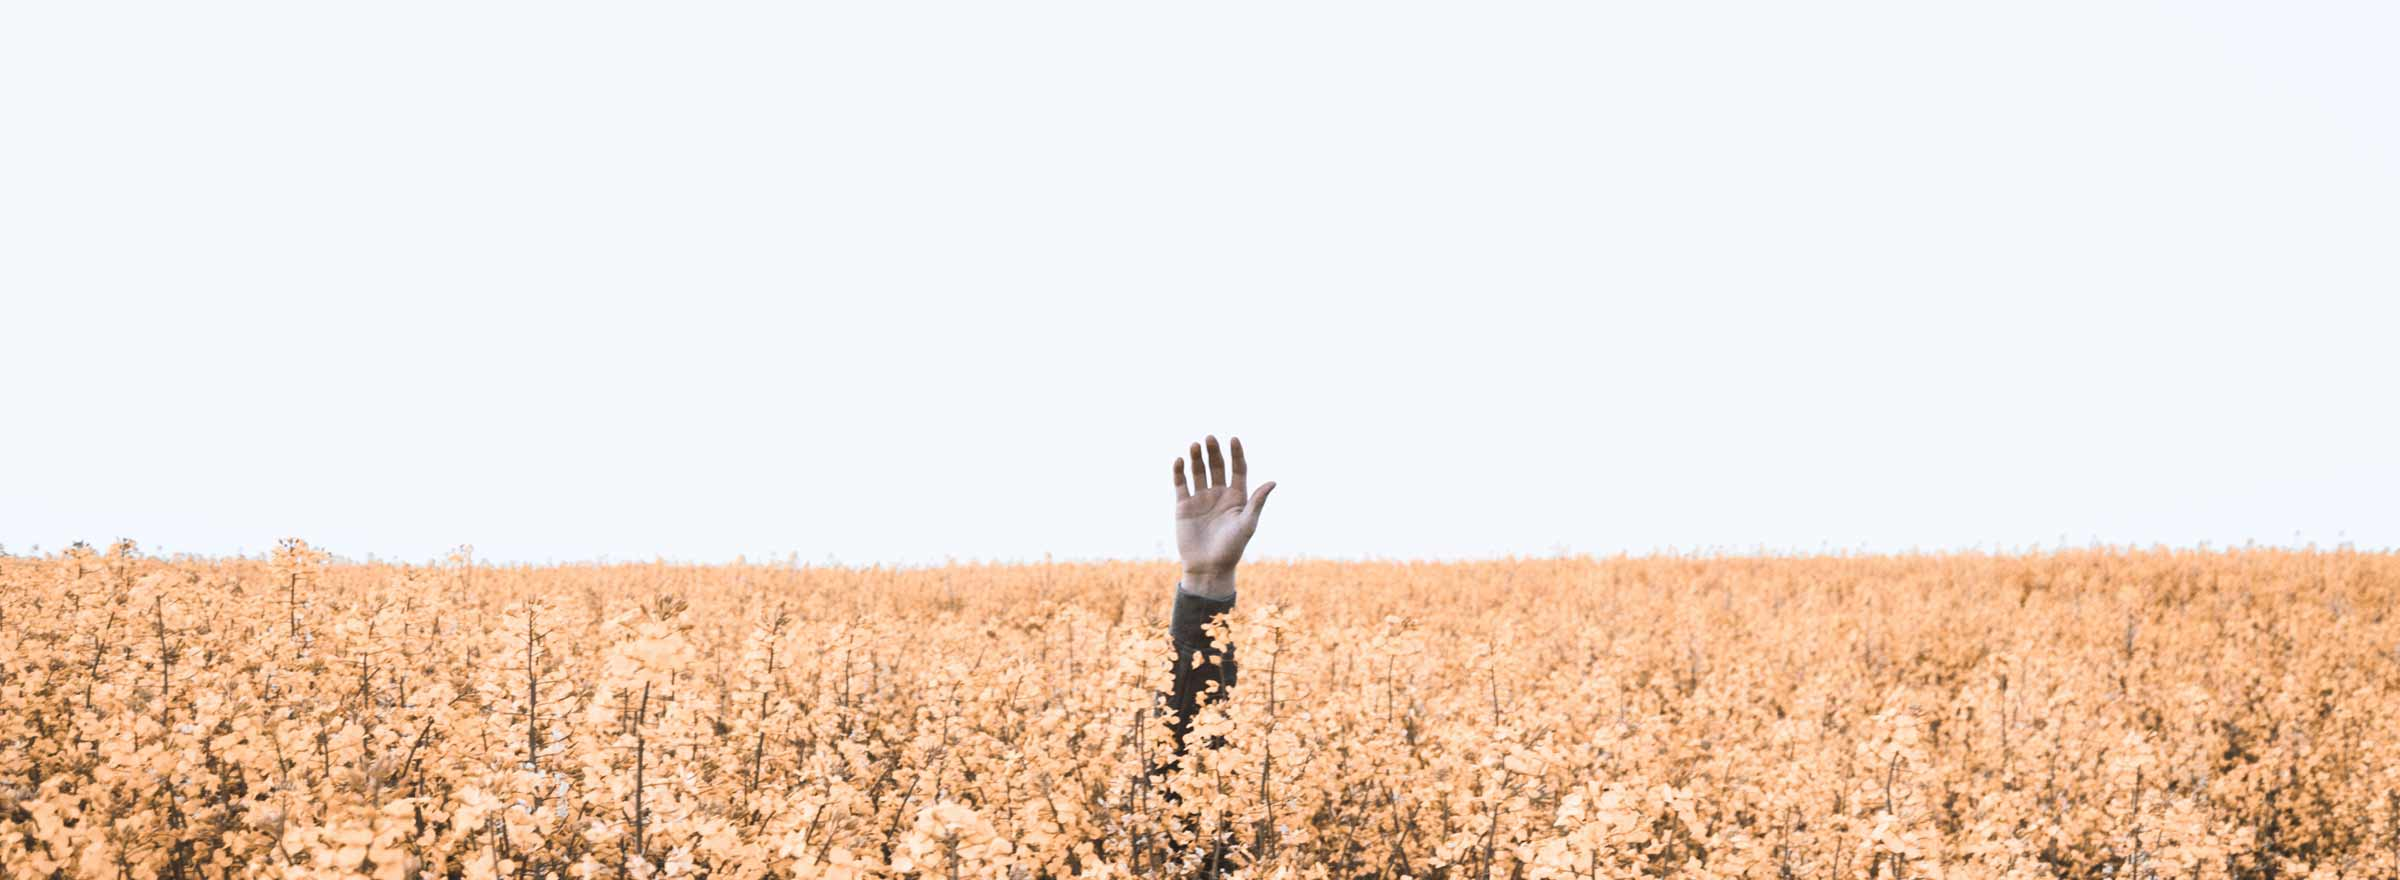 a person's hand reaching up from a field of flowers, symbolizing the need for help from a nonprofit app